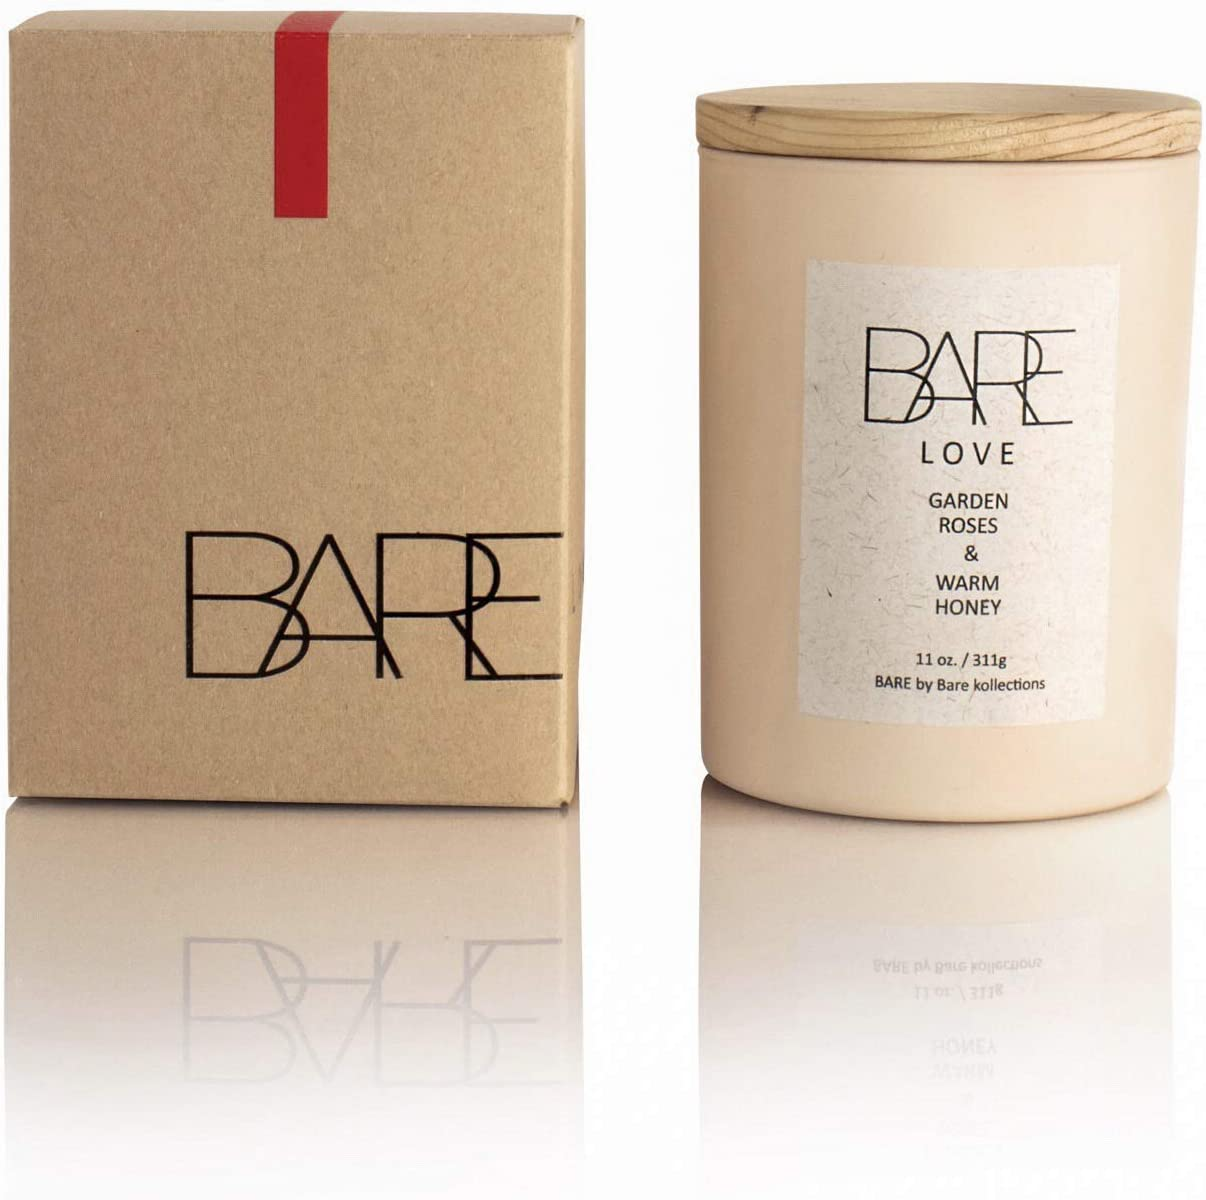 Bare Kollections Love Candle Roses 11 Ounces - Natural Coconut Soy Candle - Long Burn Time - Hand Poured - Made in USA-Aromatherapy Candle